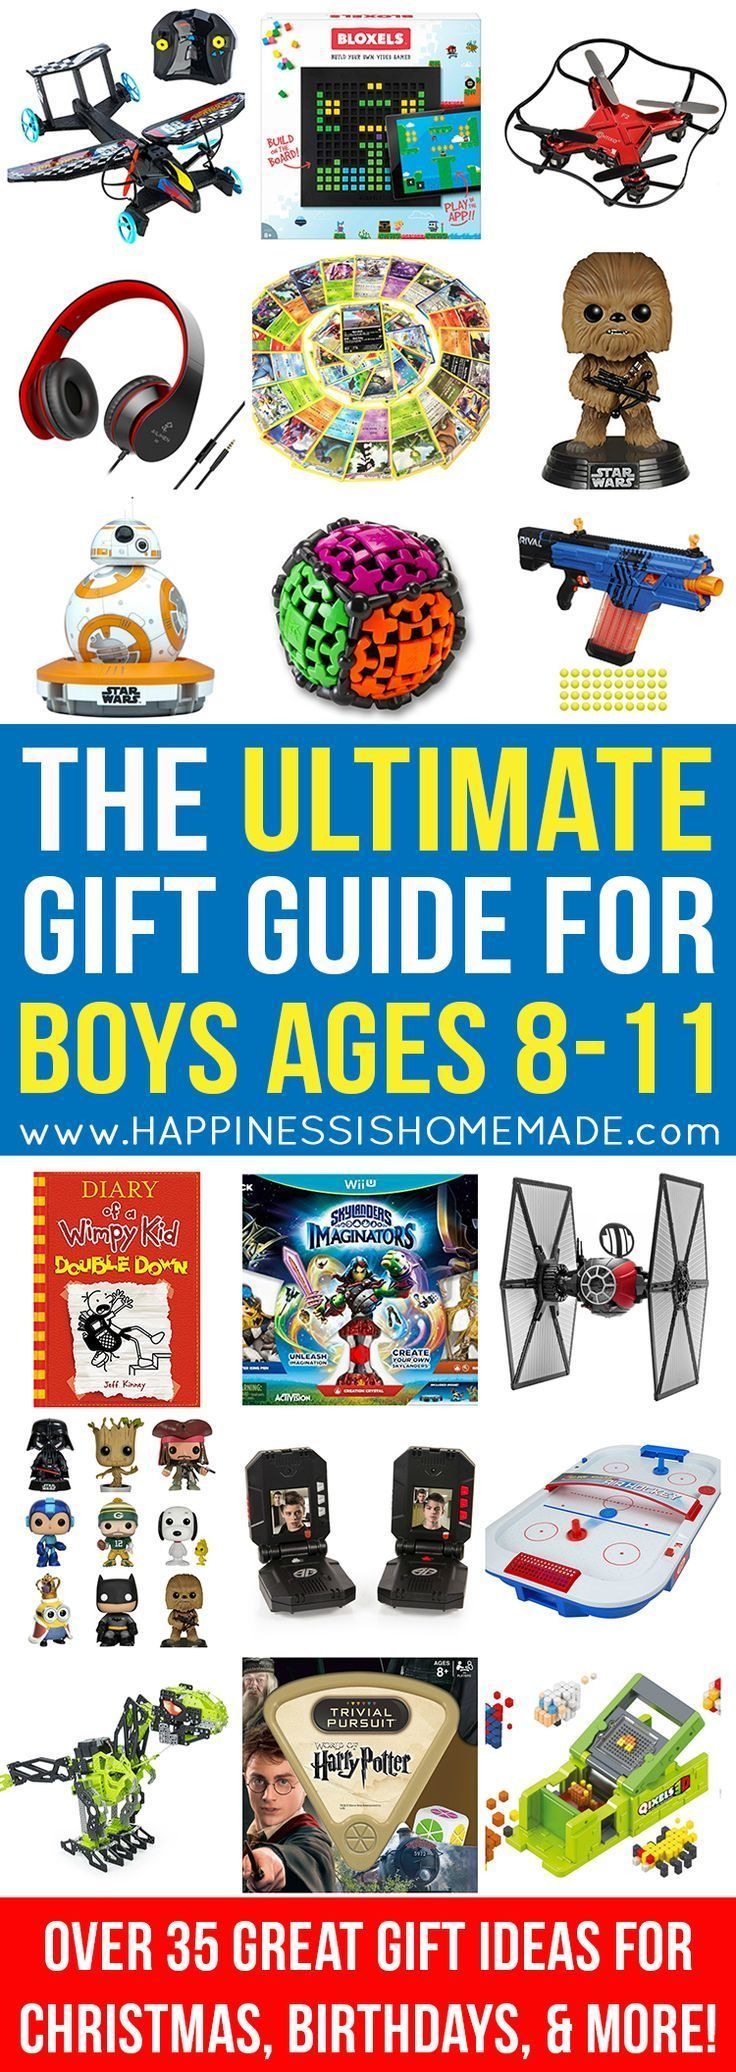 Best Toys For Boys Age 2 : Images about best toys for year old boys on